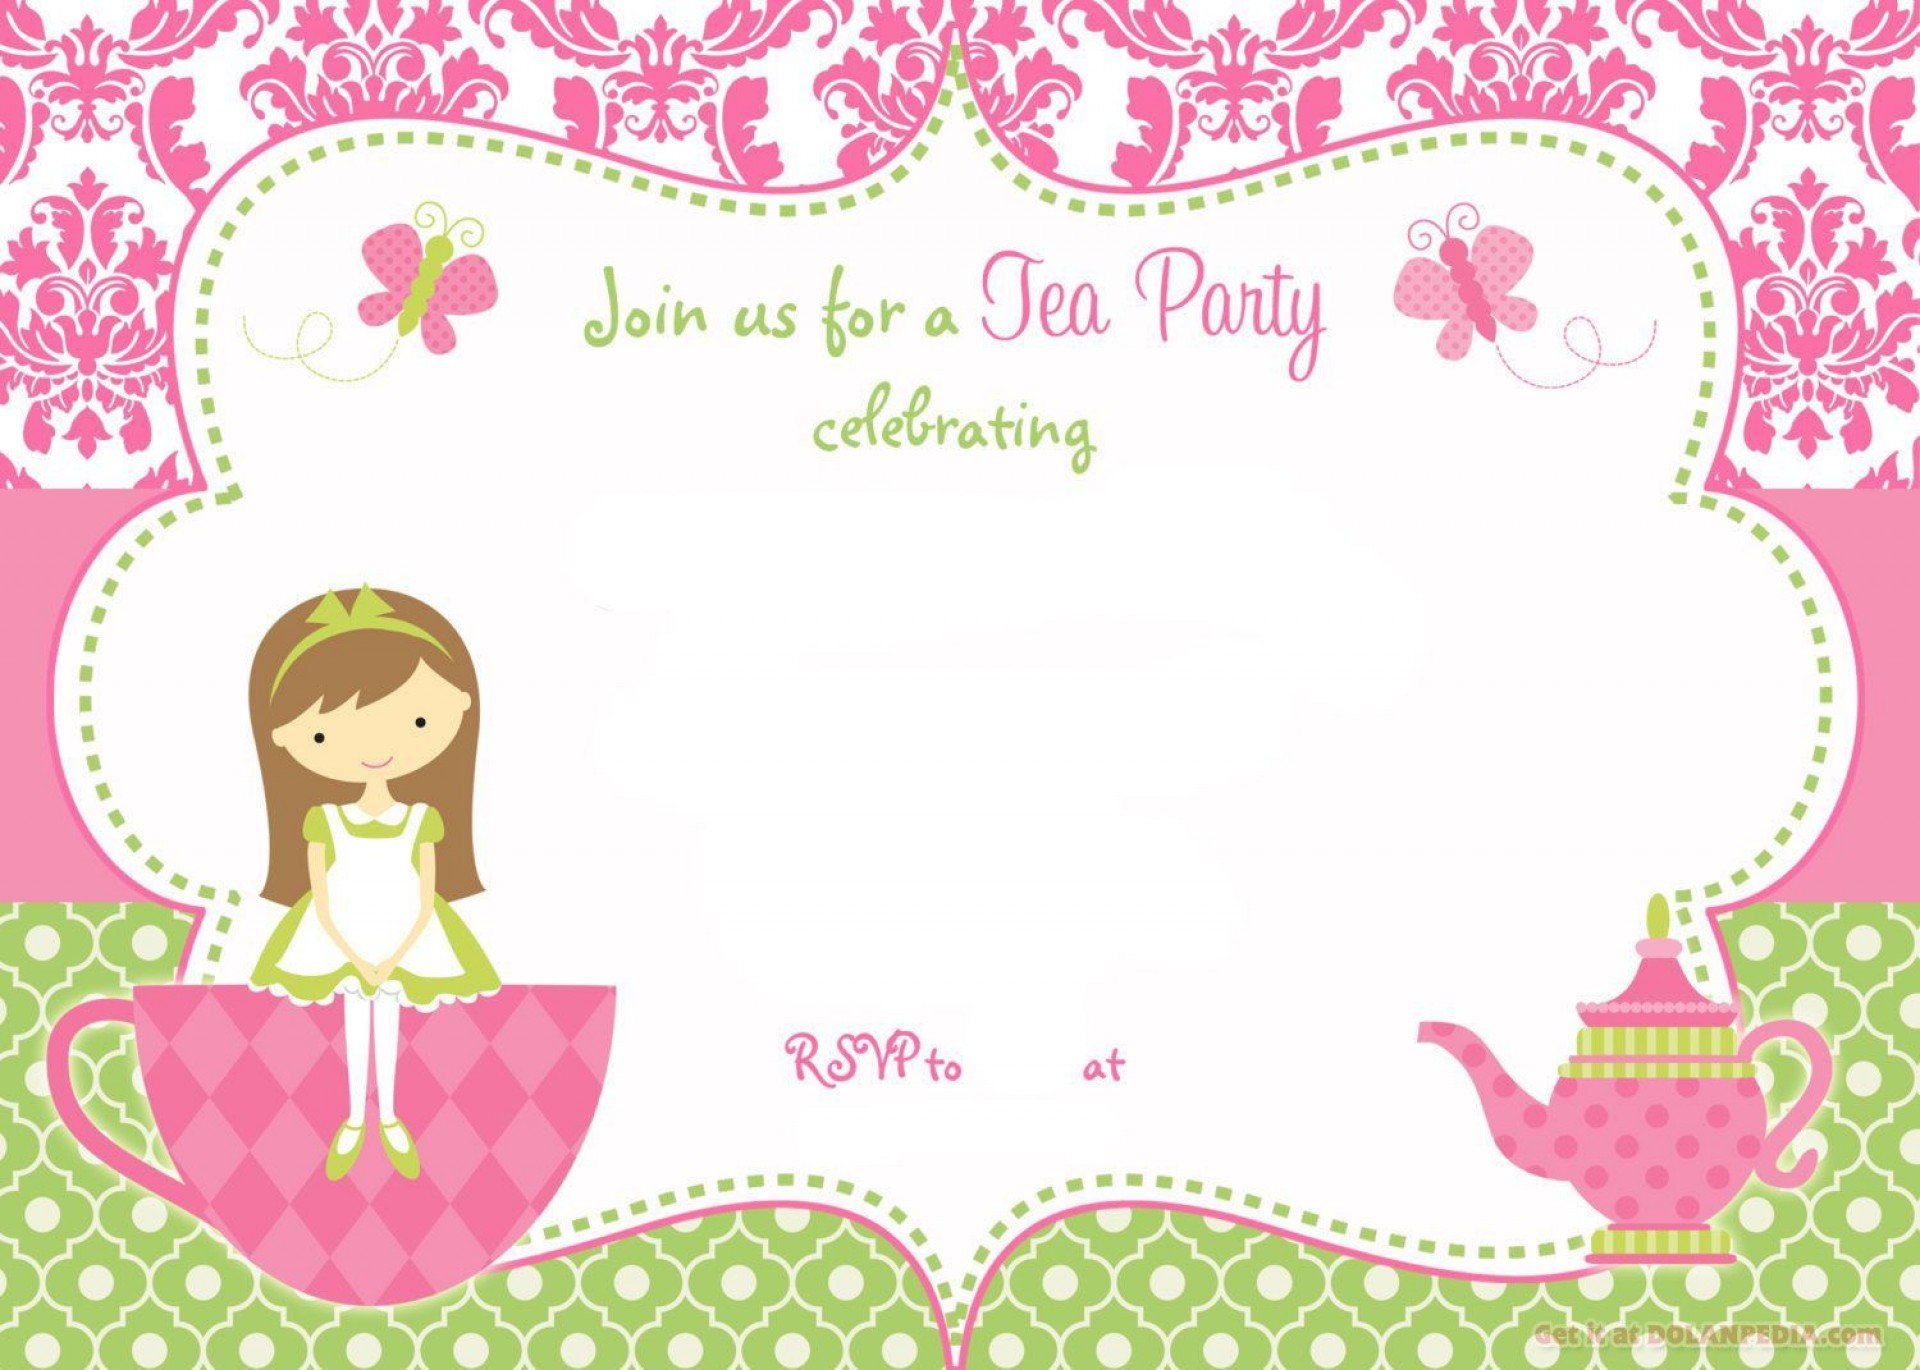 002 Shocking Tea Party Invitation Template High Def  Card Victorian Wording For Bridal Shower1920